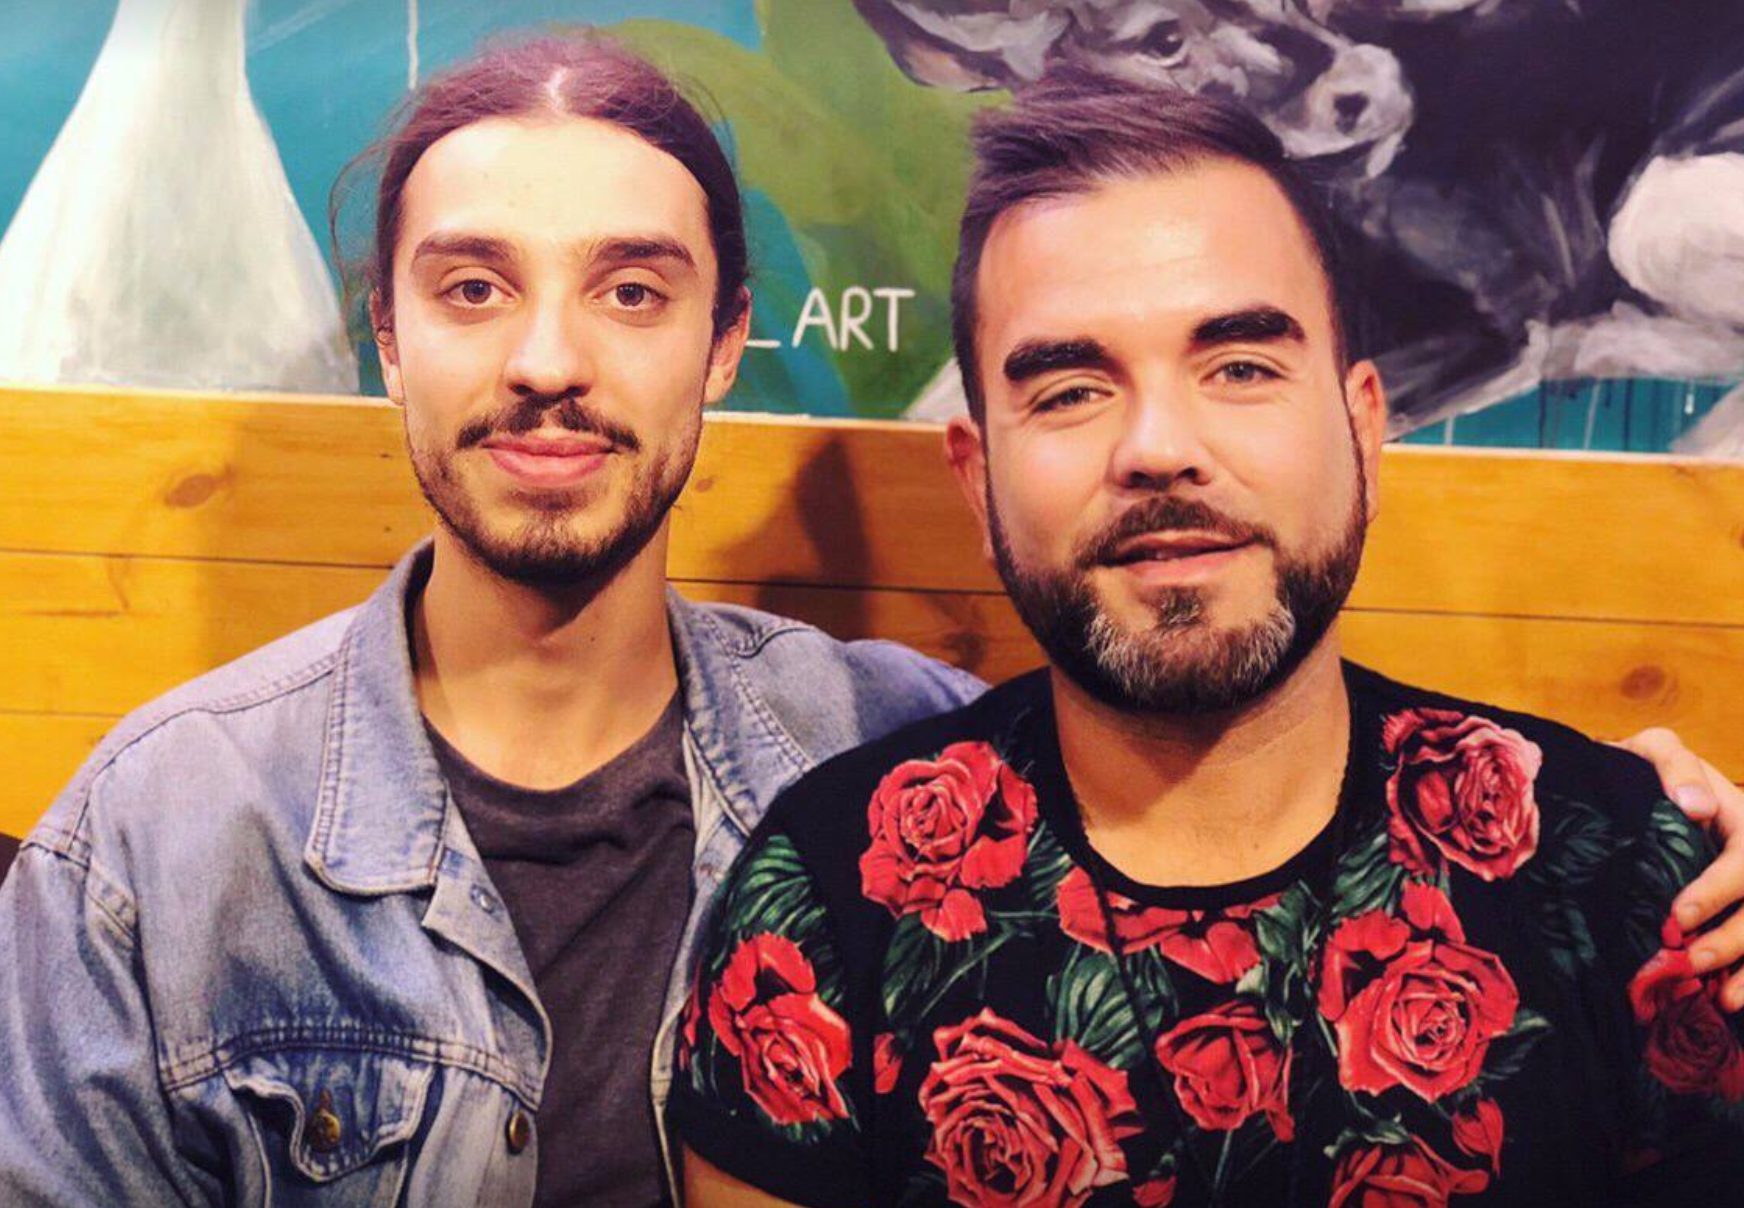 Vegan activist Earthling Ed with PBN Co-founder Robbie Lockie